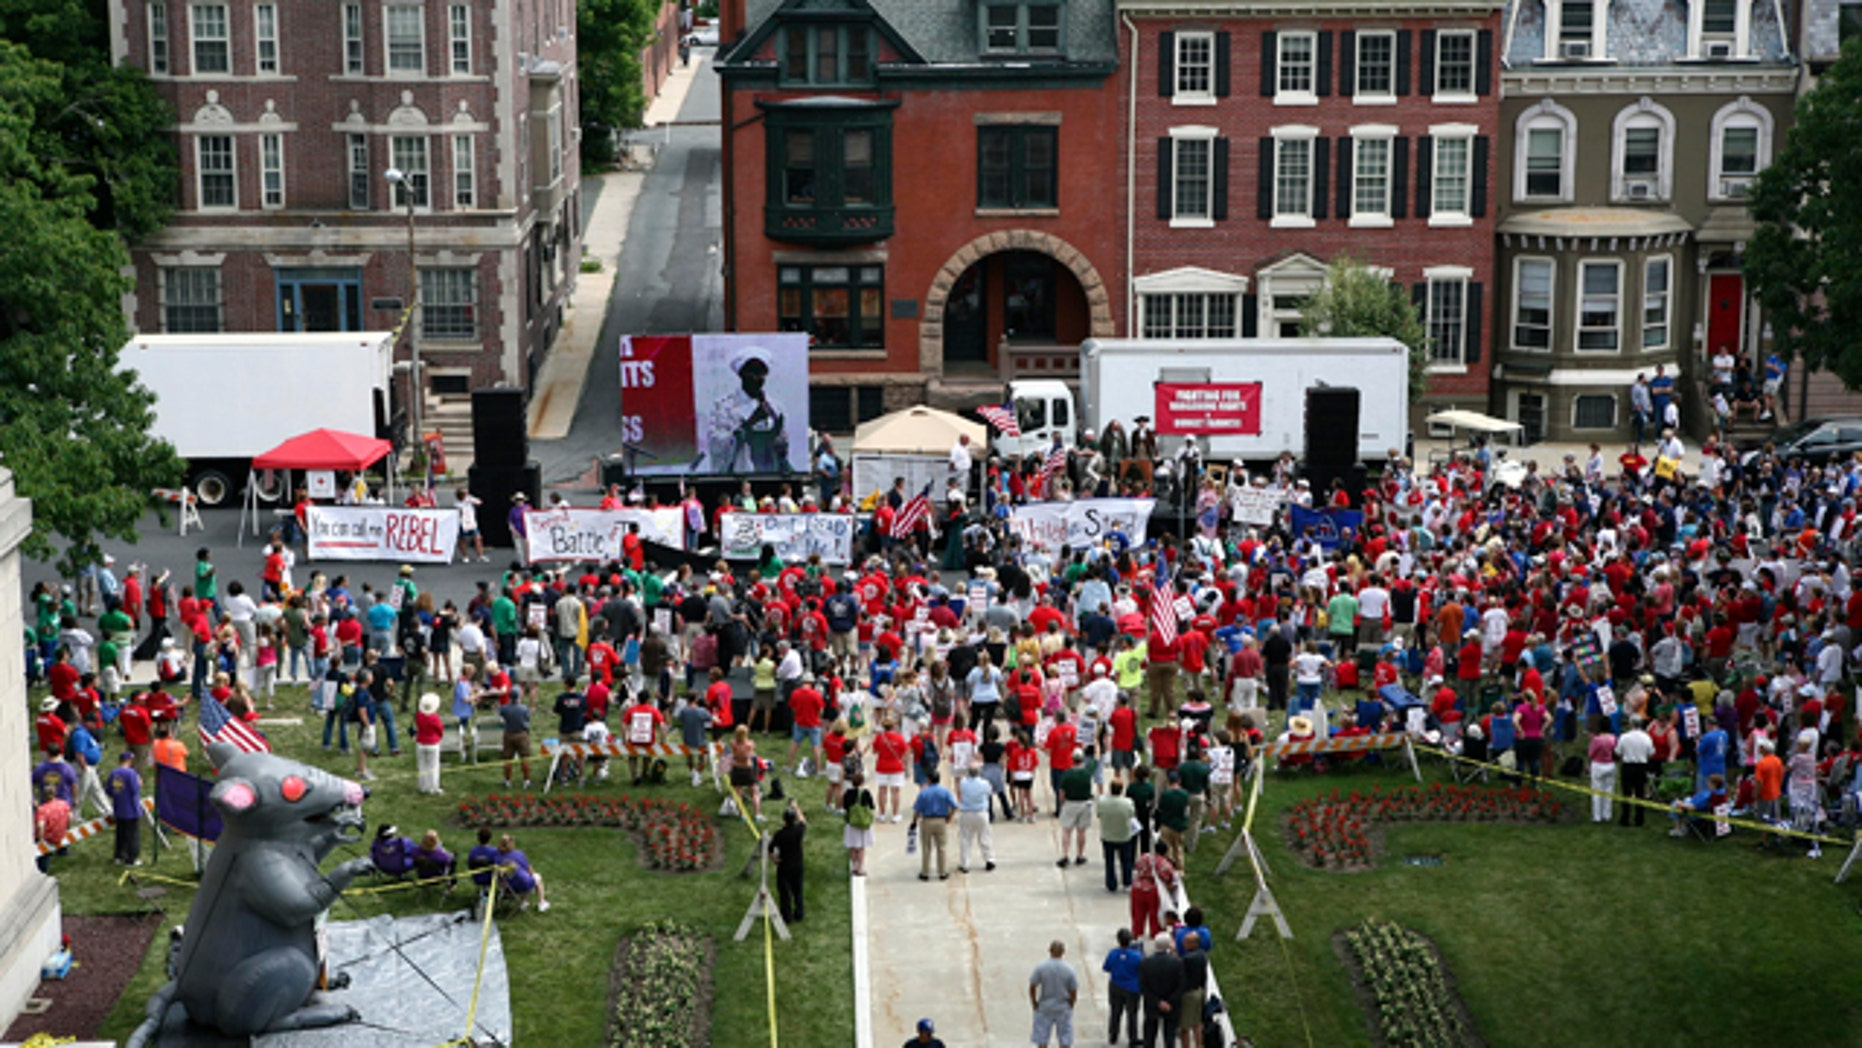 June 20: A large gathering of public employee union members and supporters protest in Trenton, N.J., outside the Statehouse over plans by Gov. Chris Christie to reduce benefits and limit collective bargaining over health care for public workers.